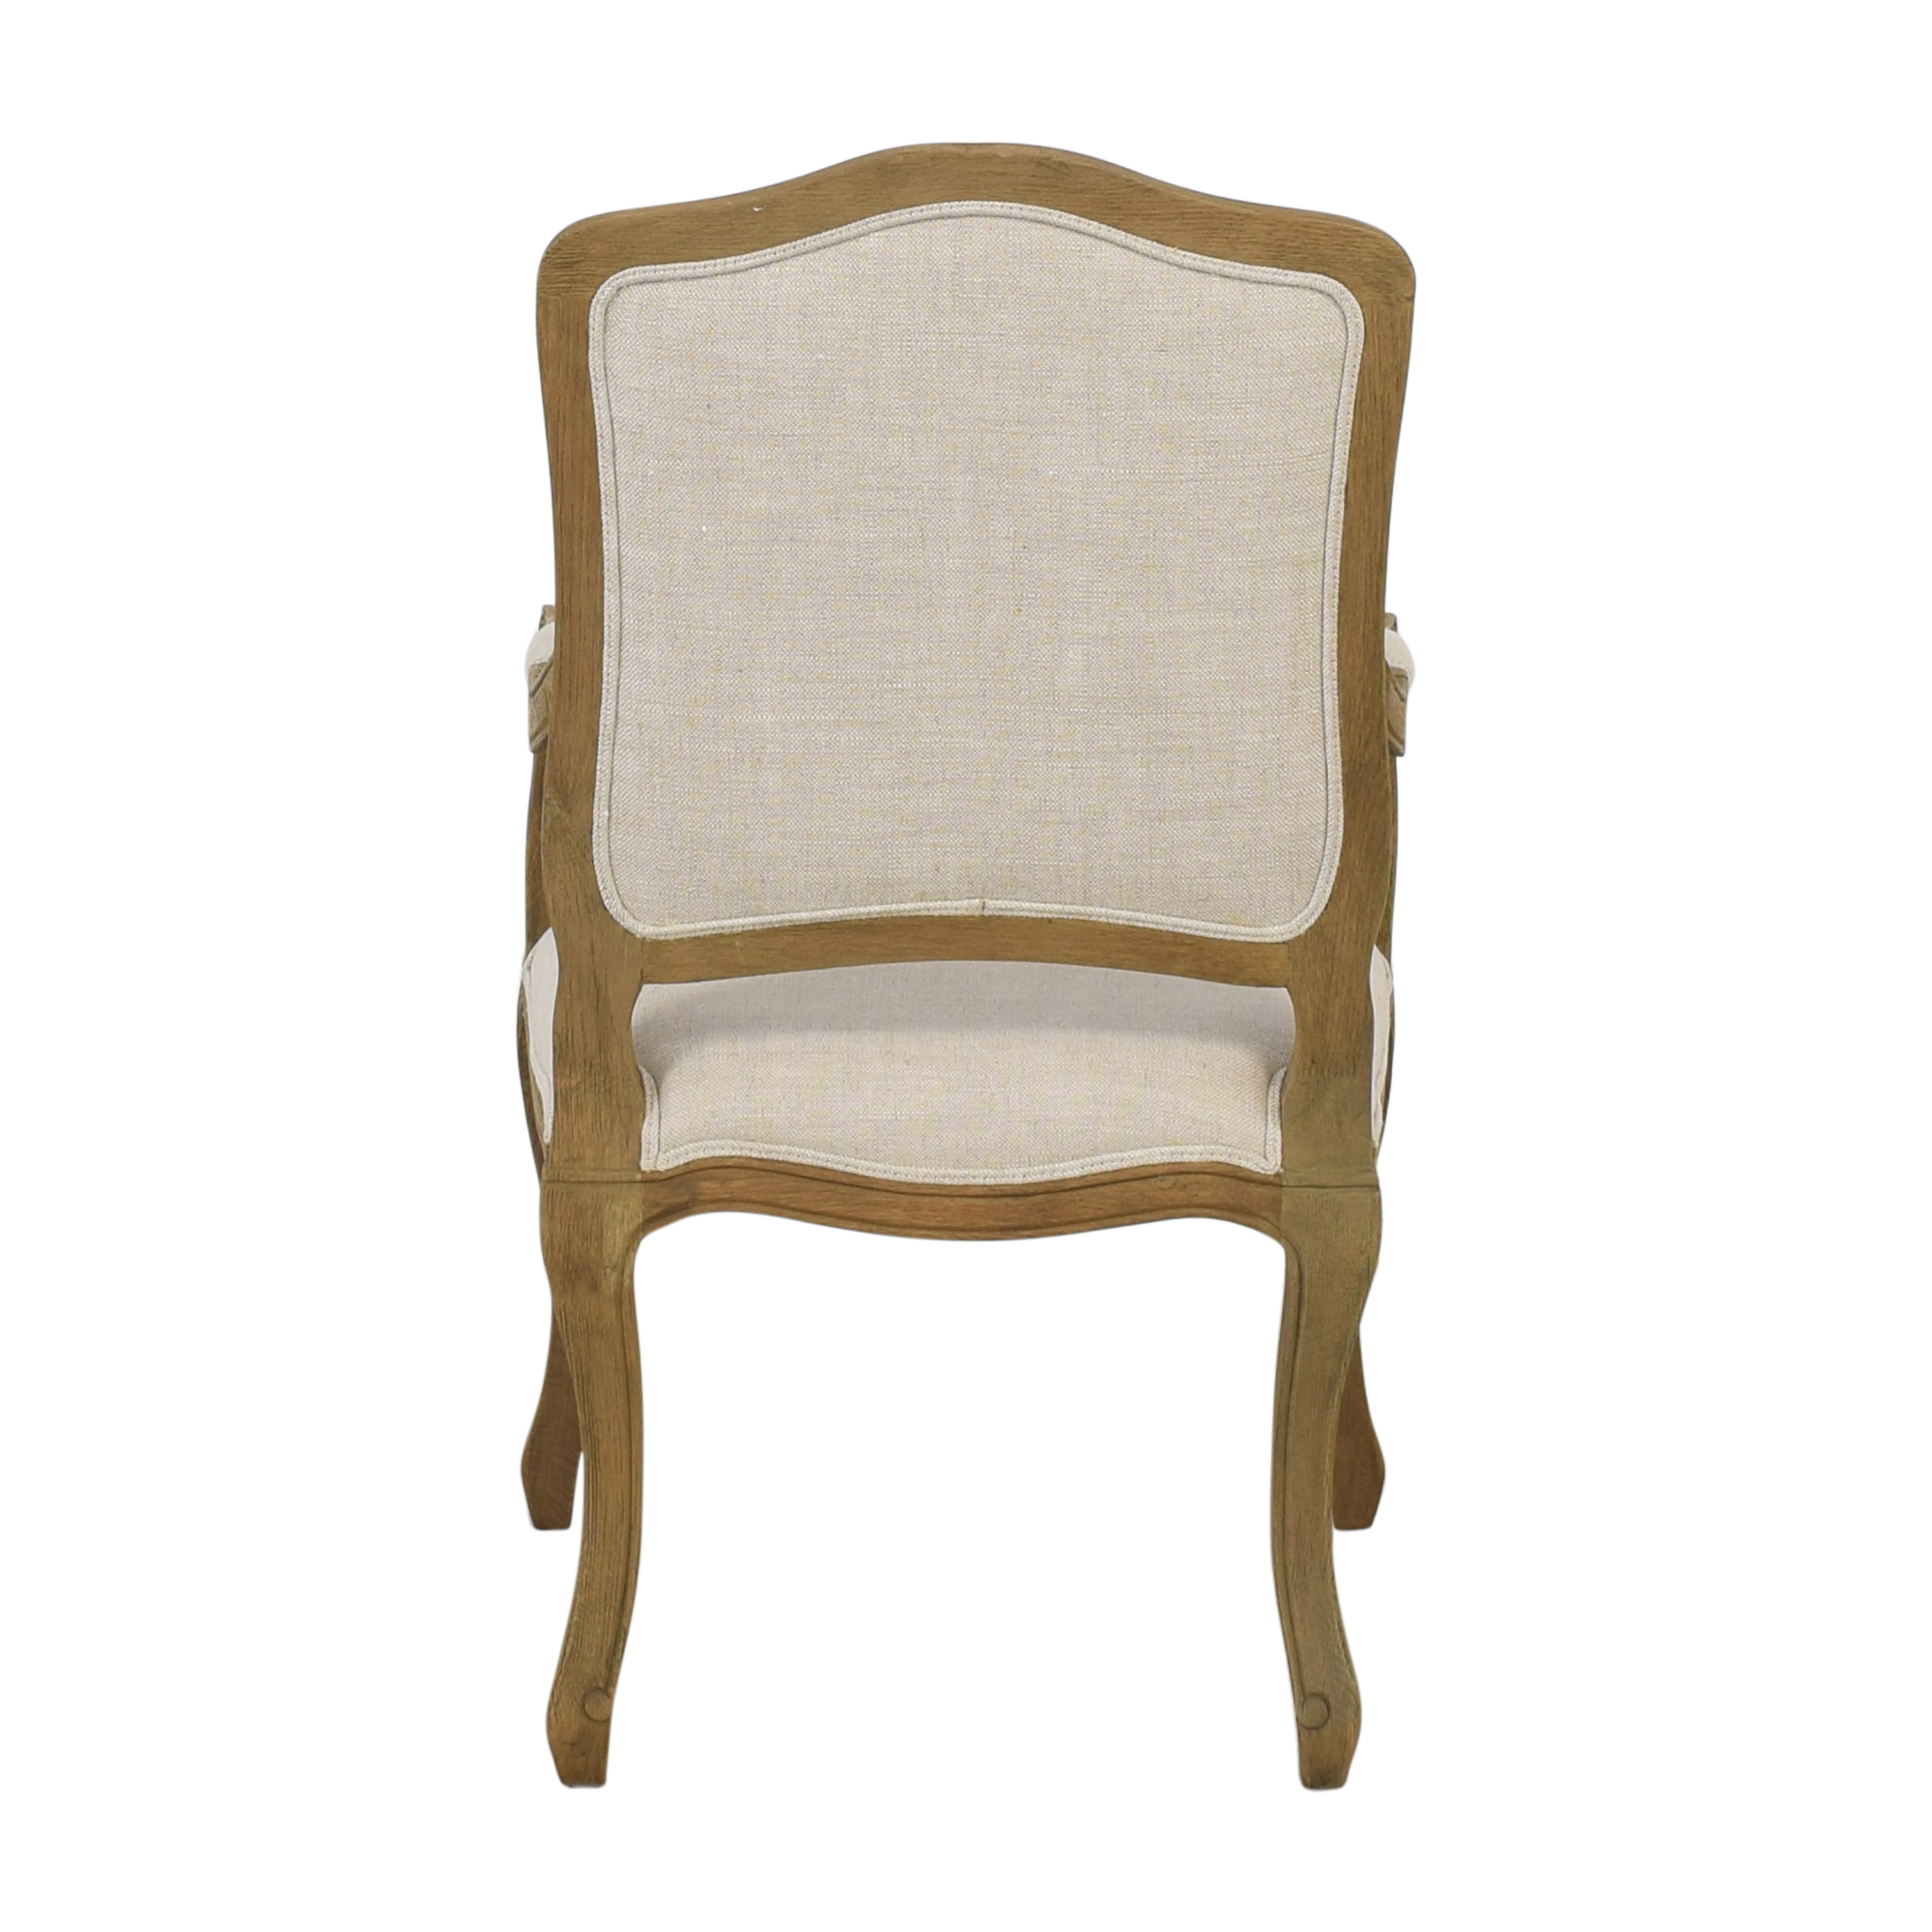 Restoration Hardware Restoration Hardware Vintage French Camelback Fabric Armchair Accent Chairs